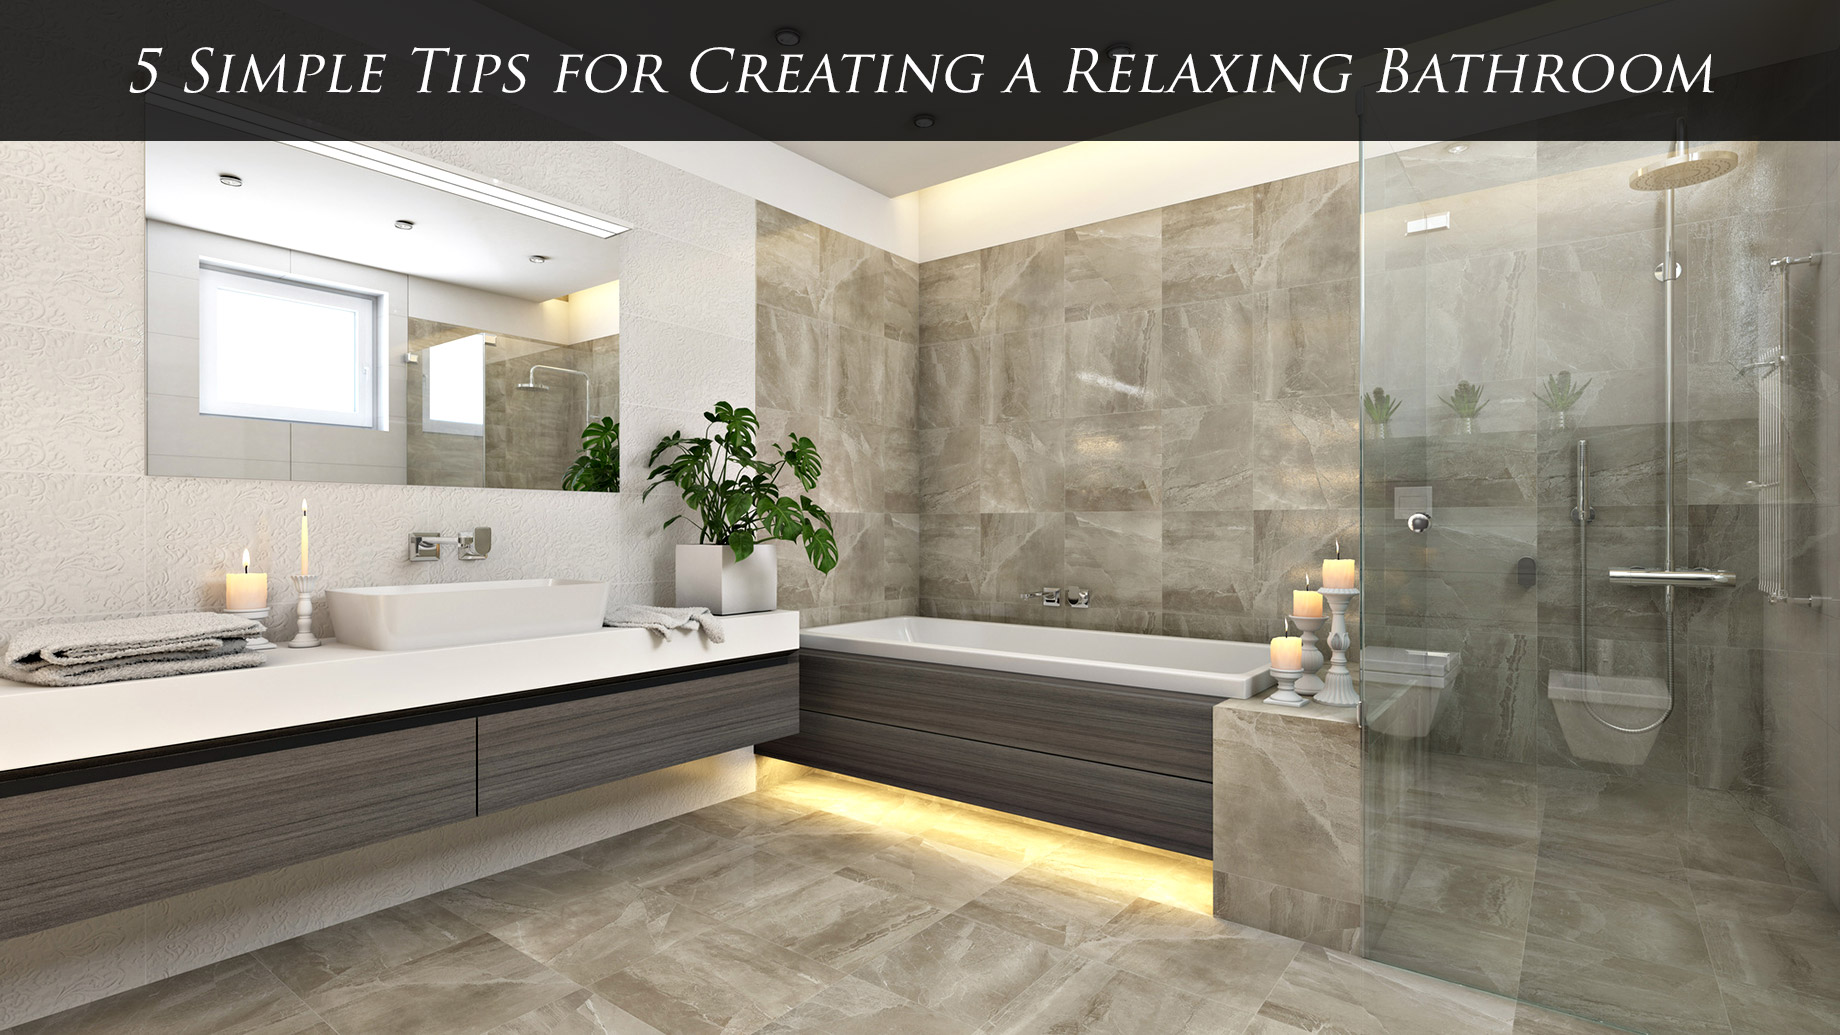 5 Simple Tips for Creating a Relaxing Bathroom